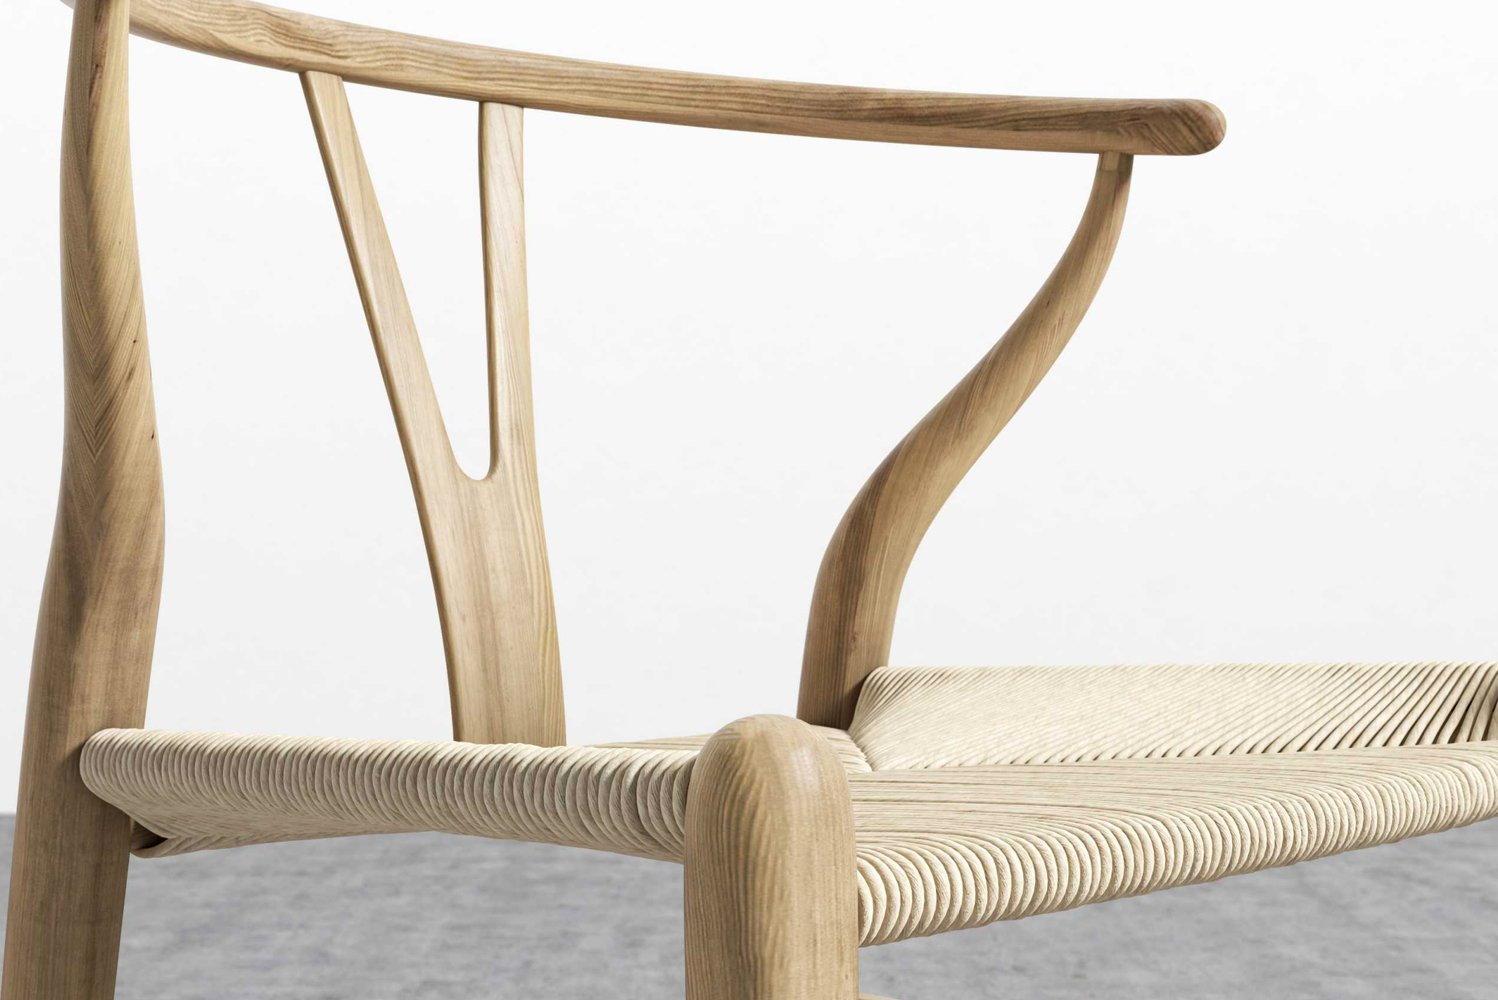 The chair uses FAS grade wood, treated with wood-wax oil and is VOC free.